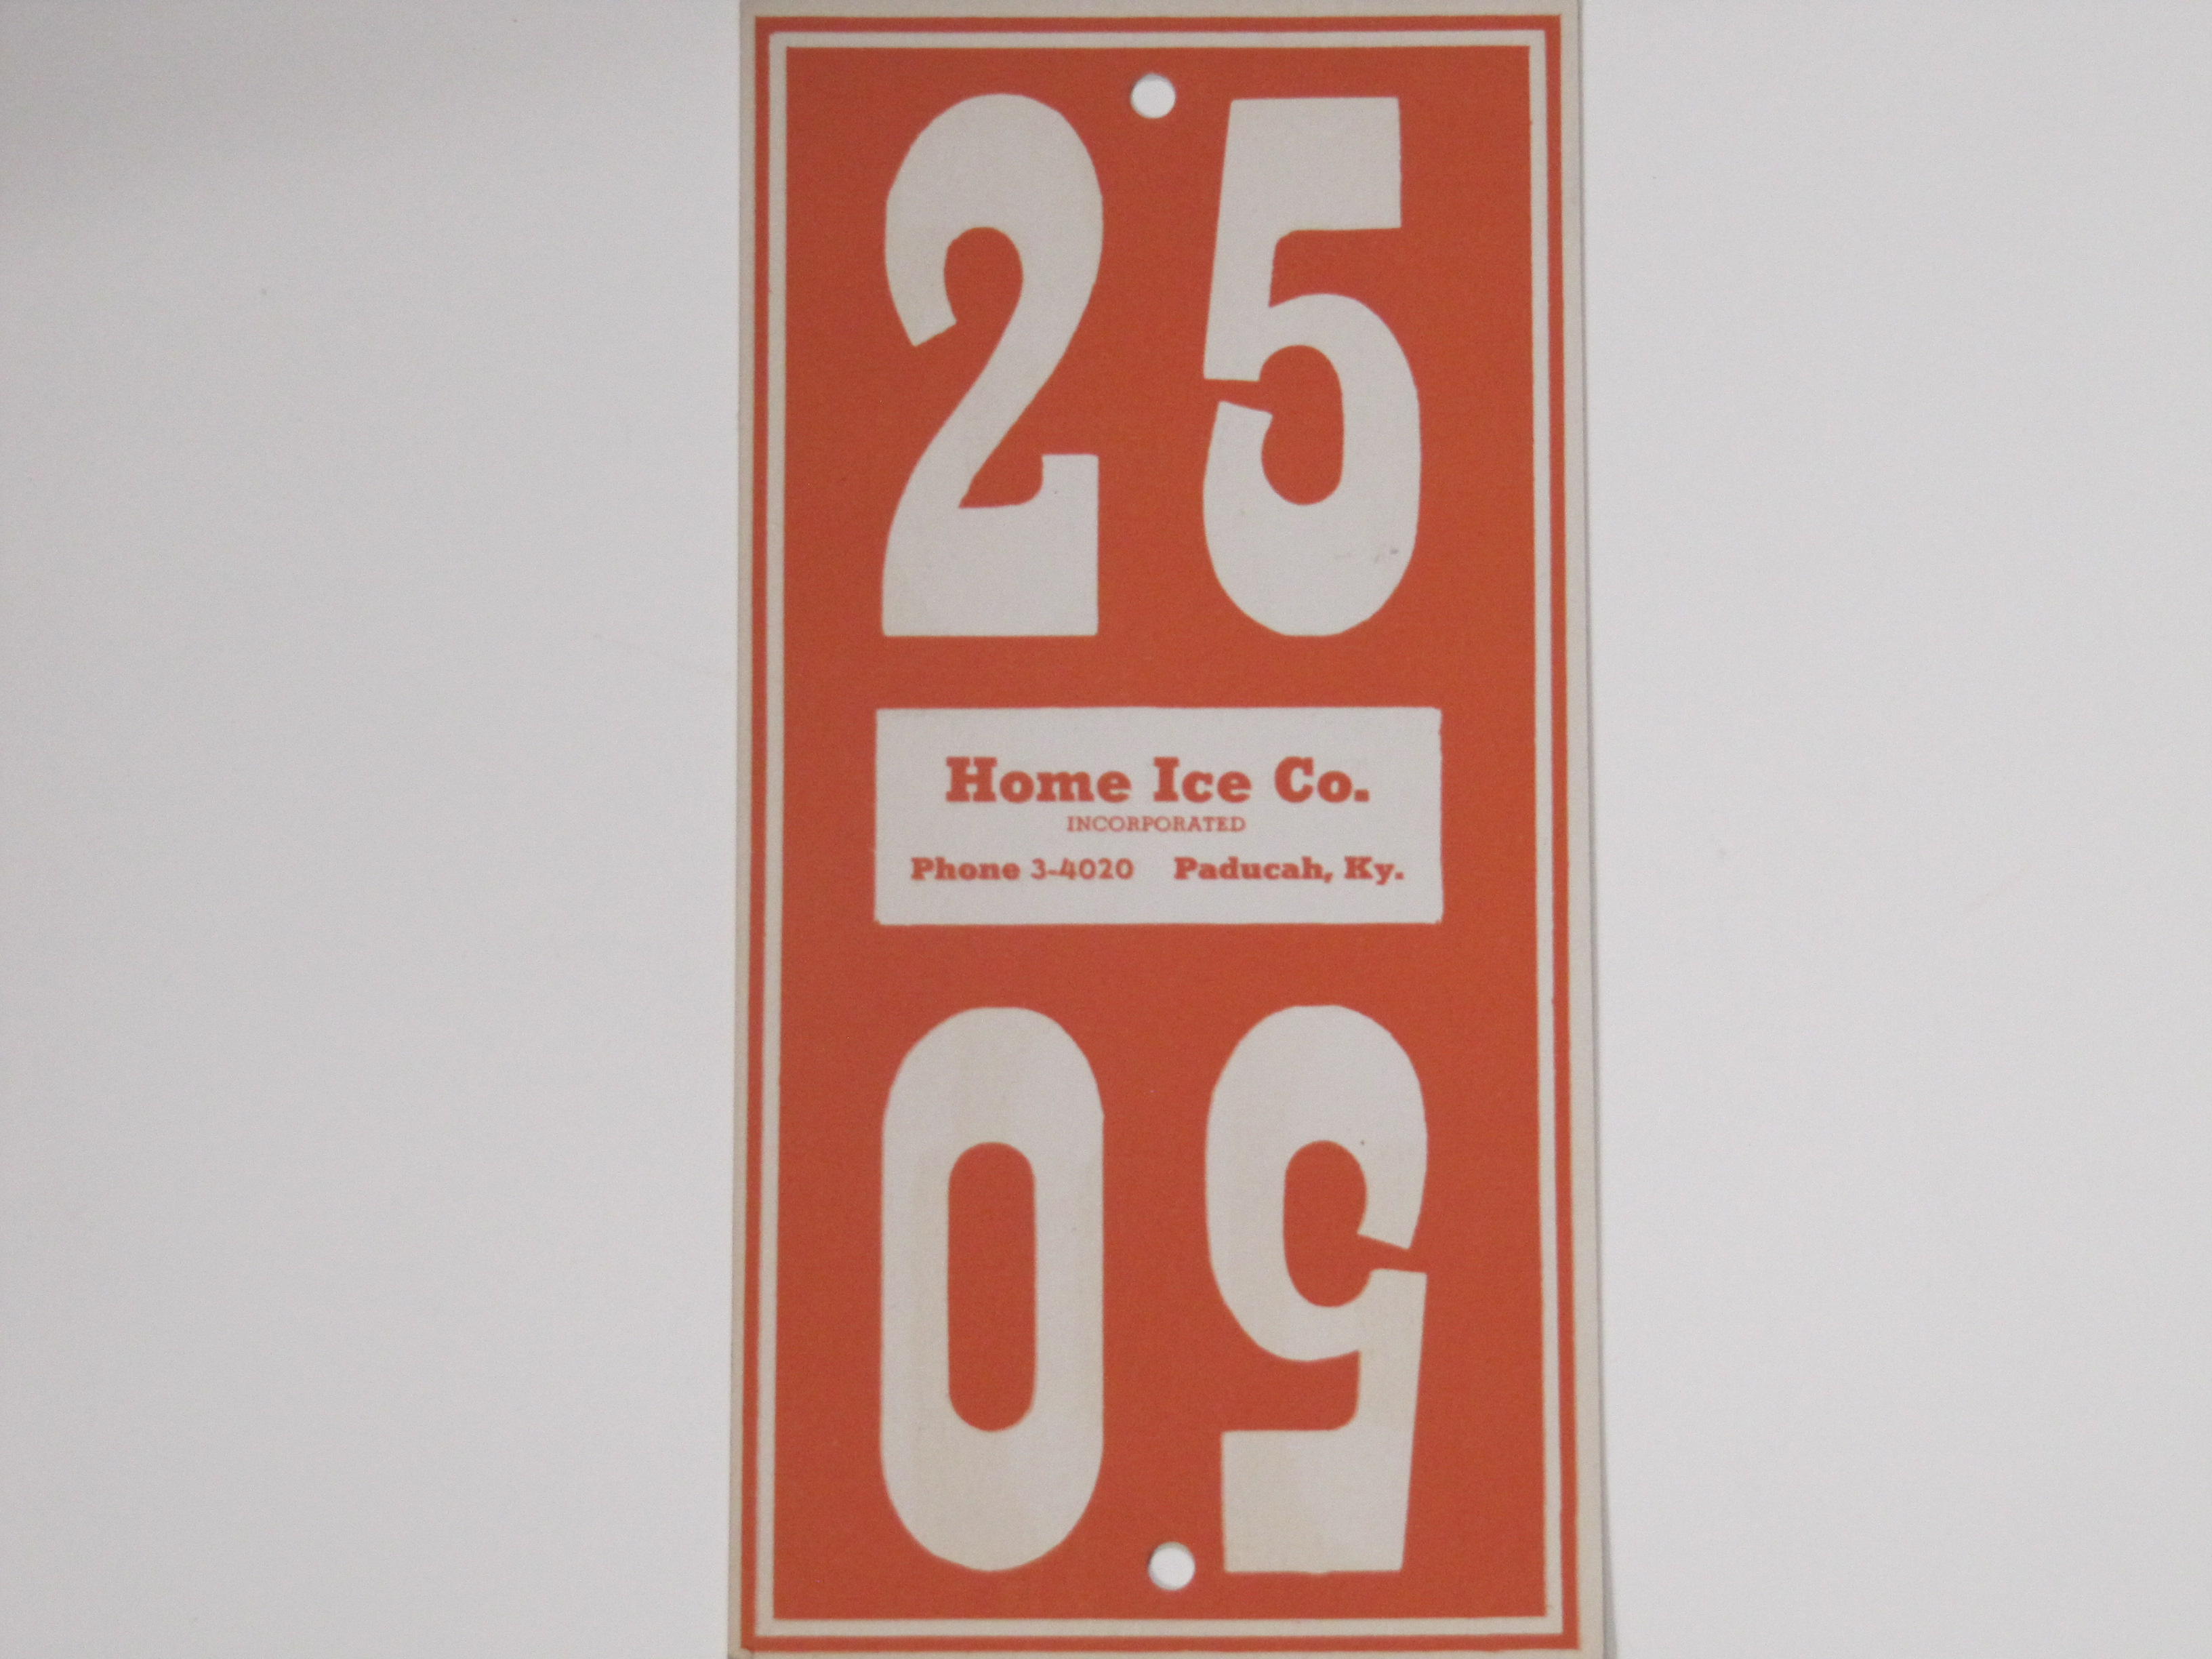 Home Ice Co. red